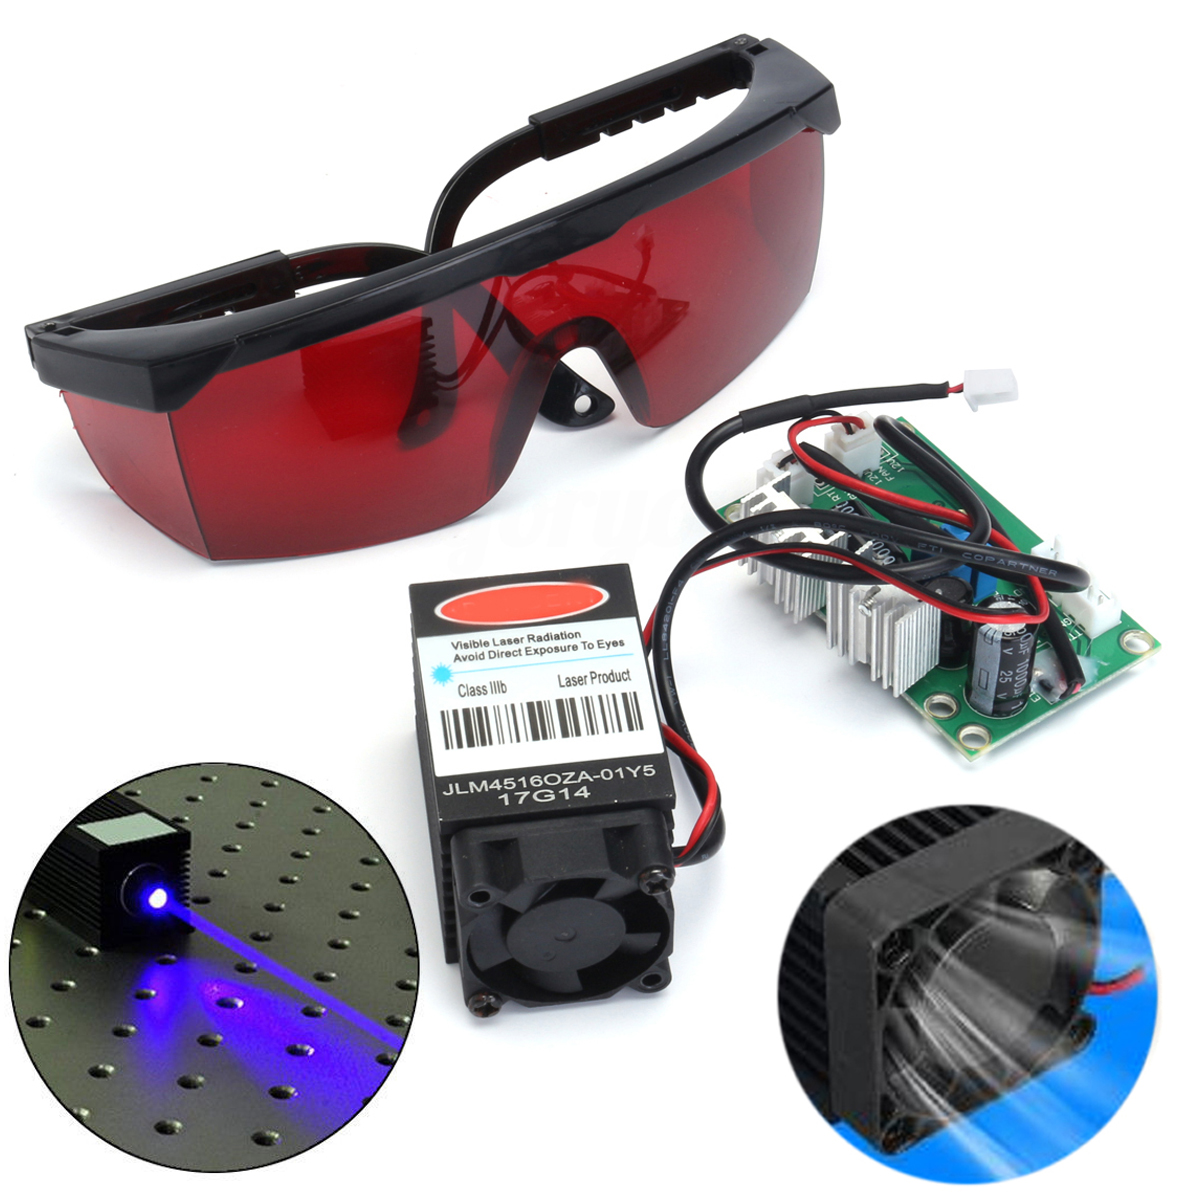 Blue Focusable Laser Diode Module 2000mw Engraver 2W 445nm 450nm With 405nm Goggles for CNC DIY Laser Engraving Machine 16 50mm 9 0mm laser diode housing w 405nm glass lens